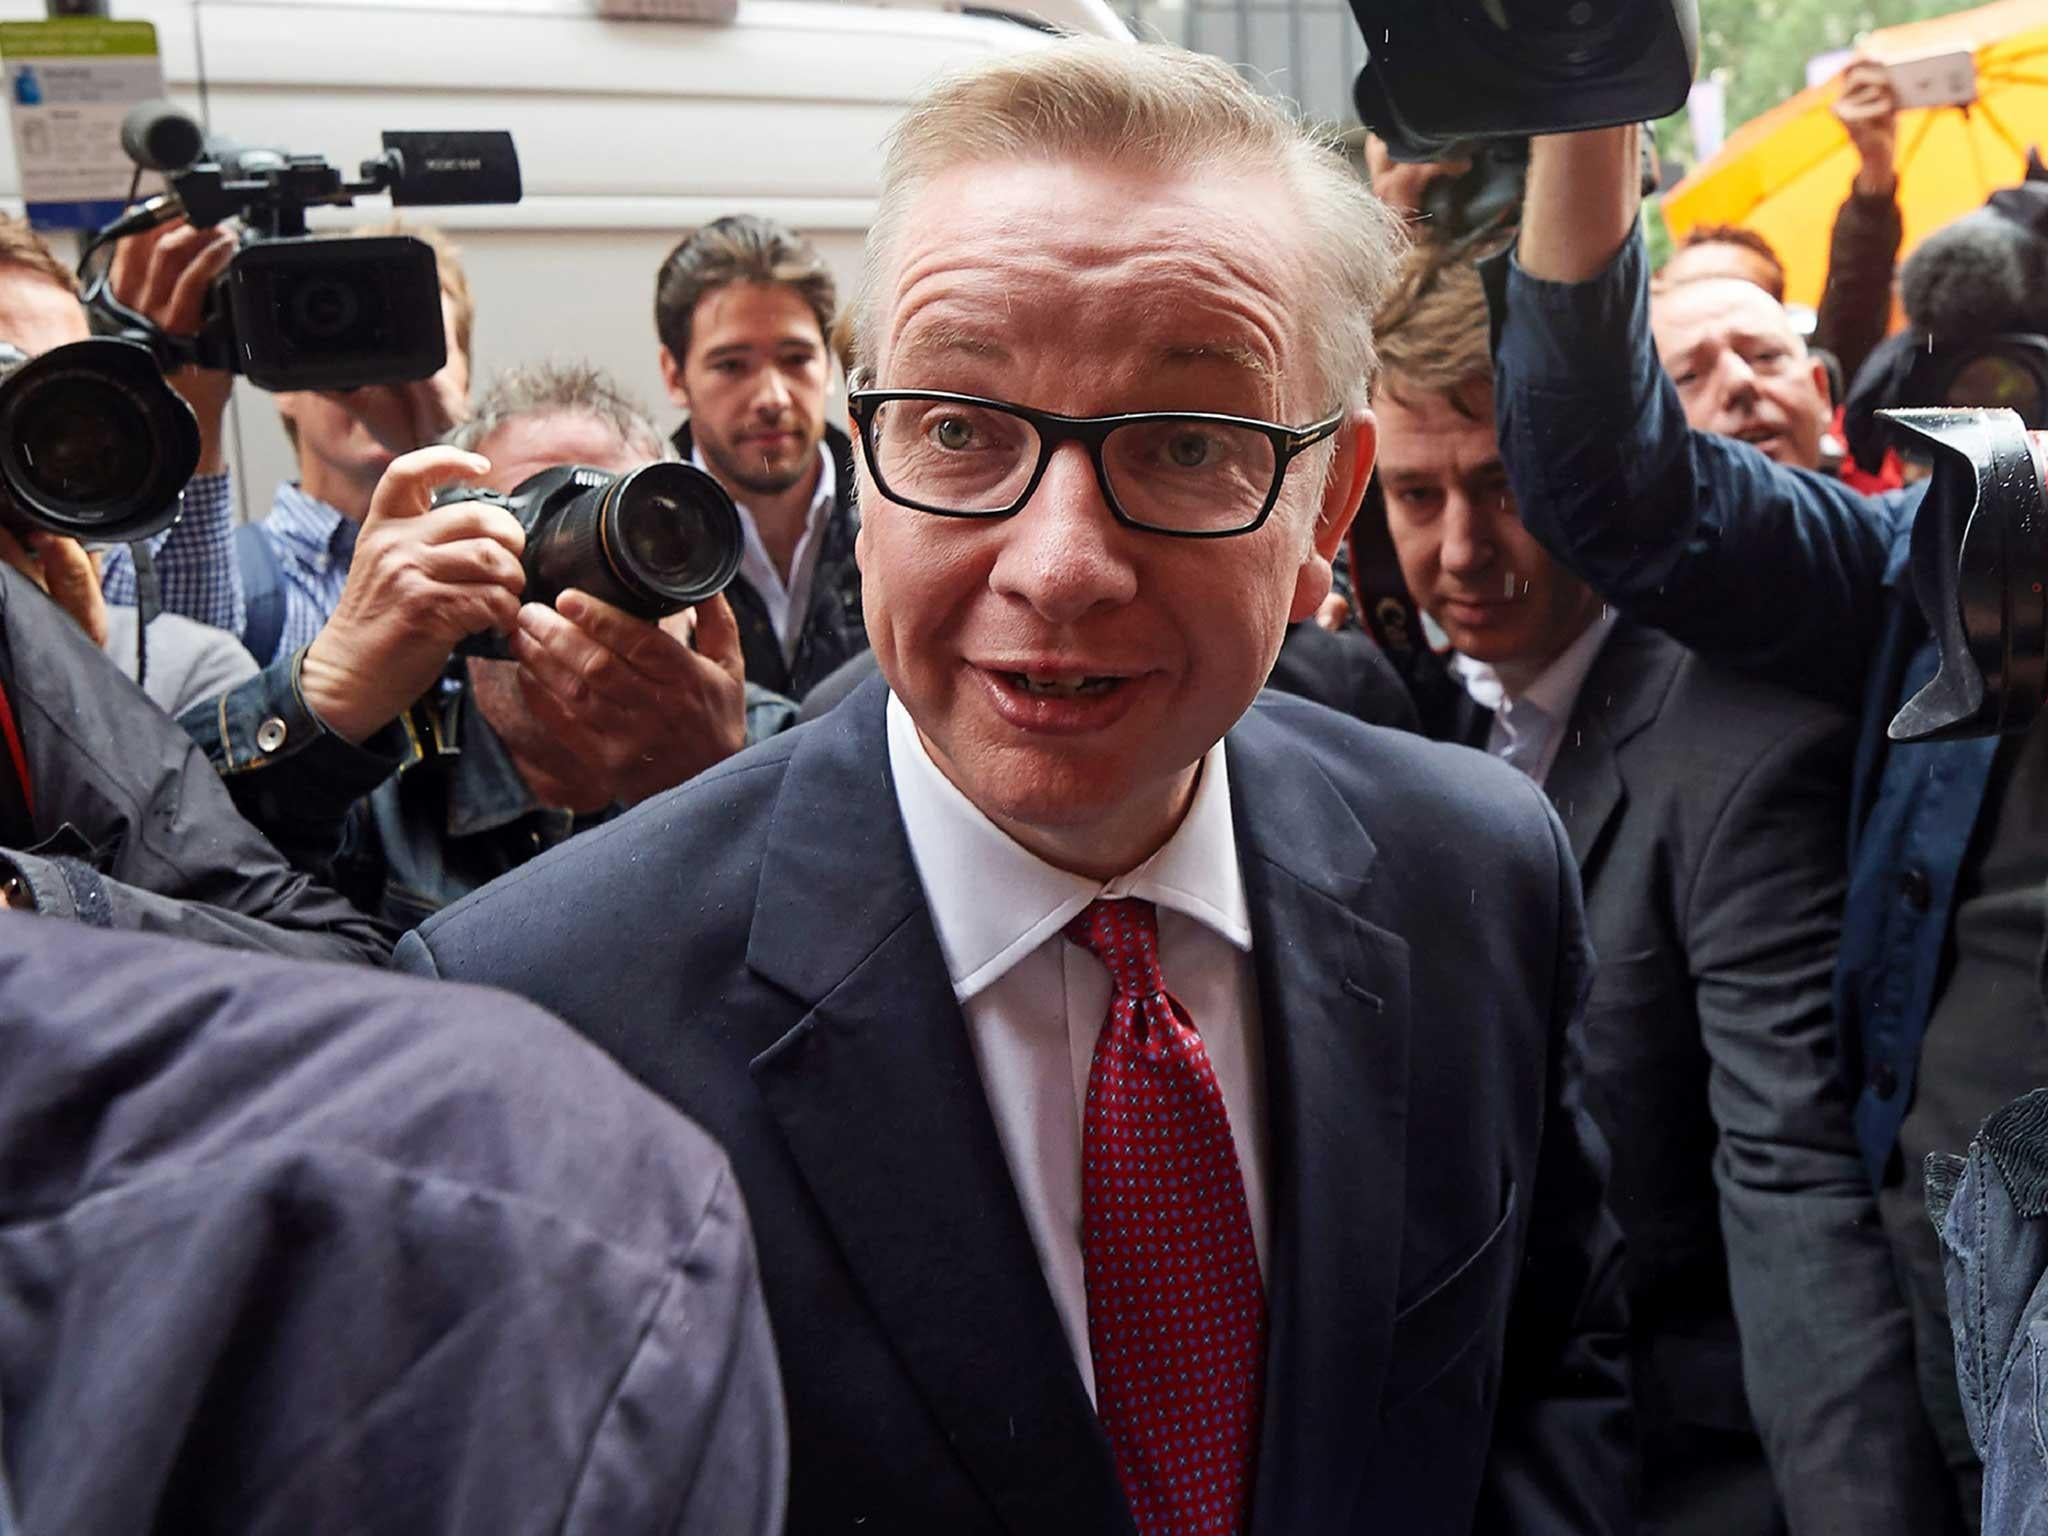 Michael Gove slams Trump over climate change saying US is 'walking out when the heat is on'